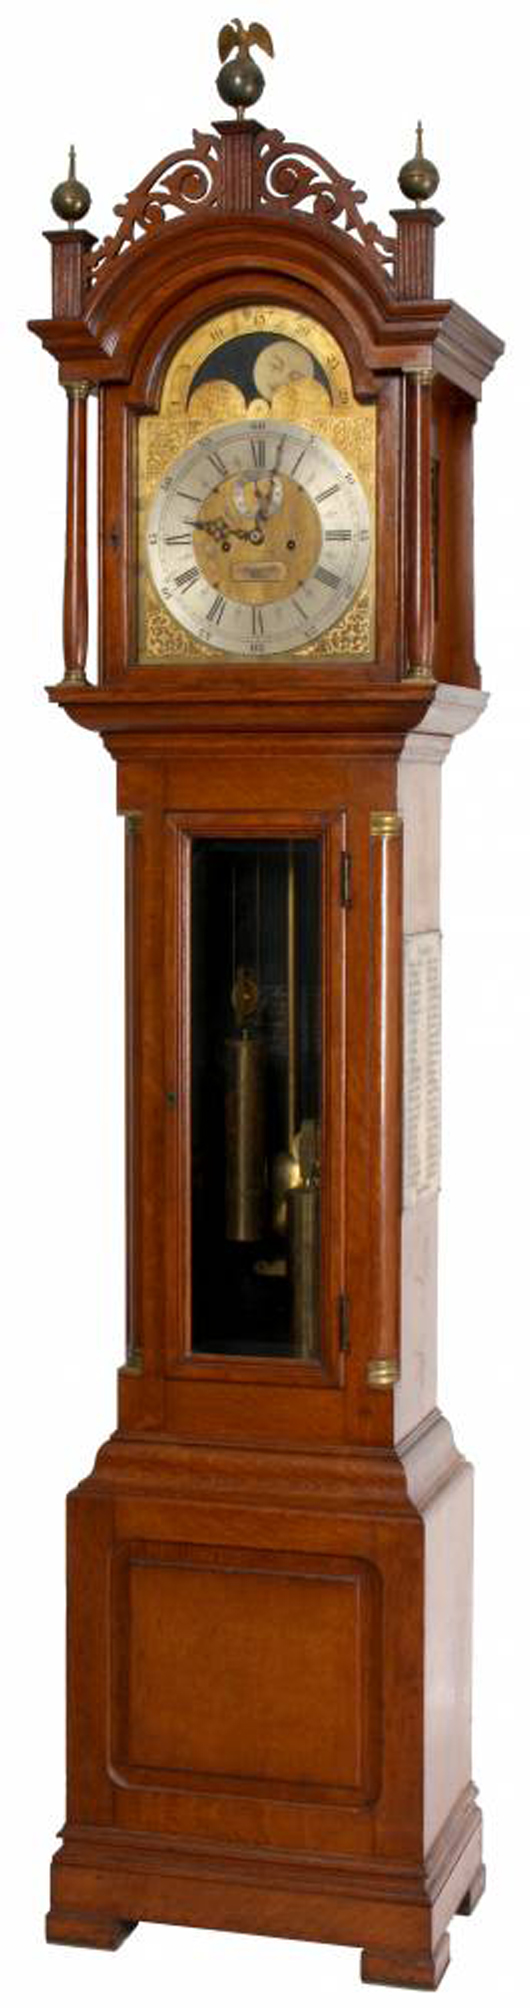 E. Howard & Co.  No. 81 oak grandfather clock , 98 inches tall (est. $8,000-$12,000). Image courtesy of Fontaine's Auction Gallery.